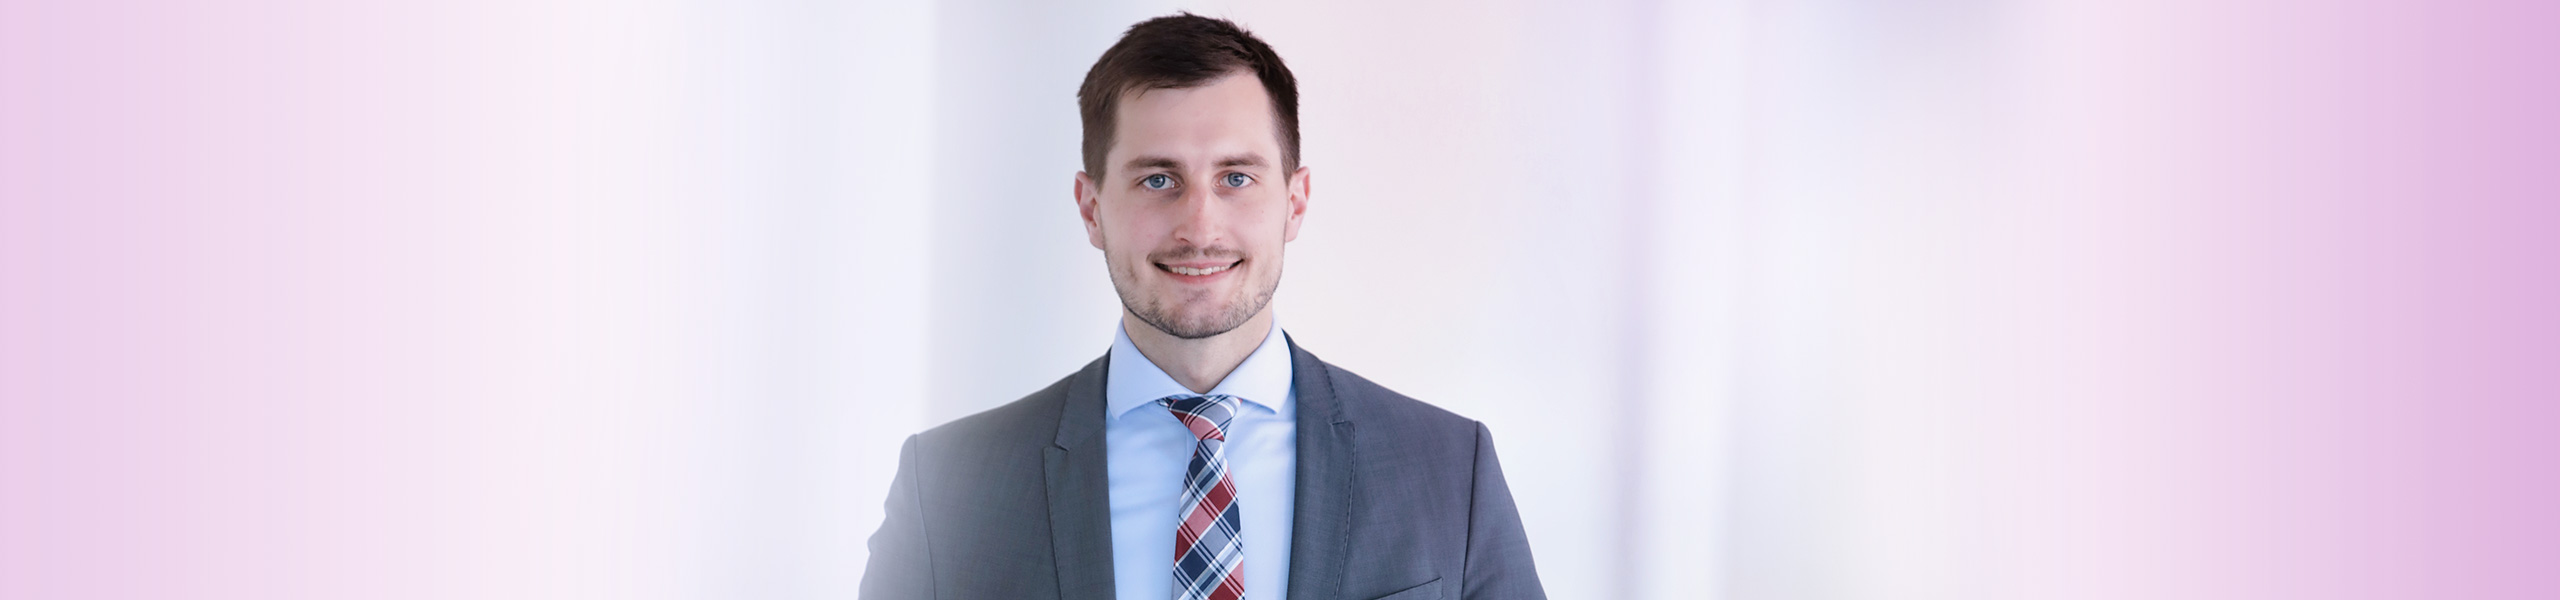 Martin Gieca Consultant bei Inhouse Consulting Postbank